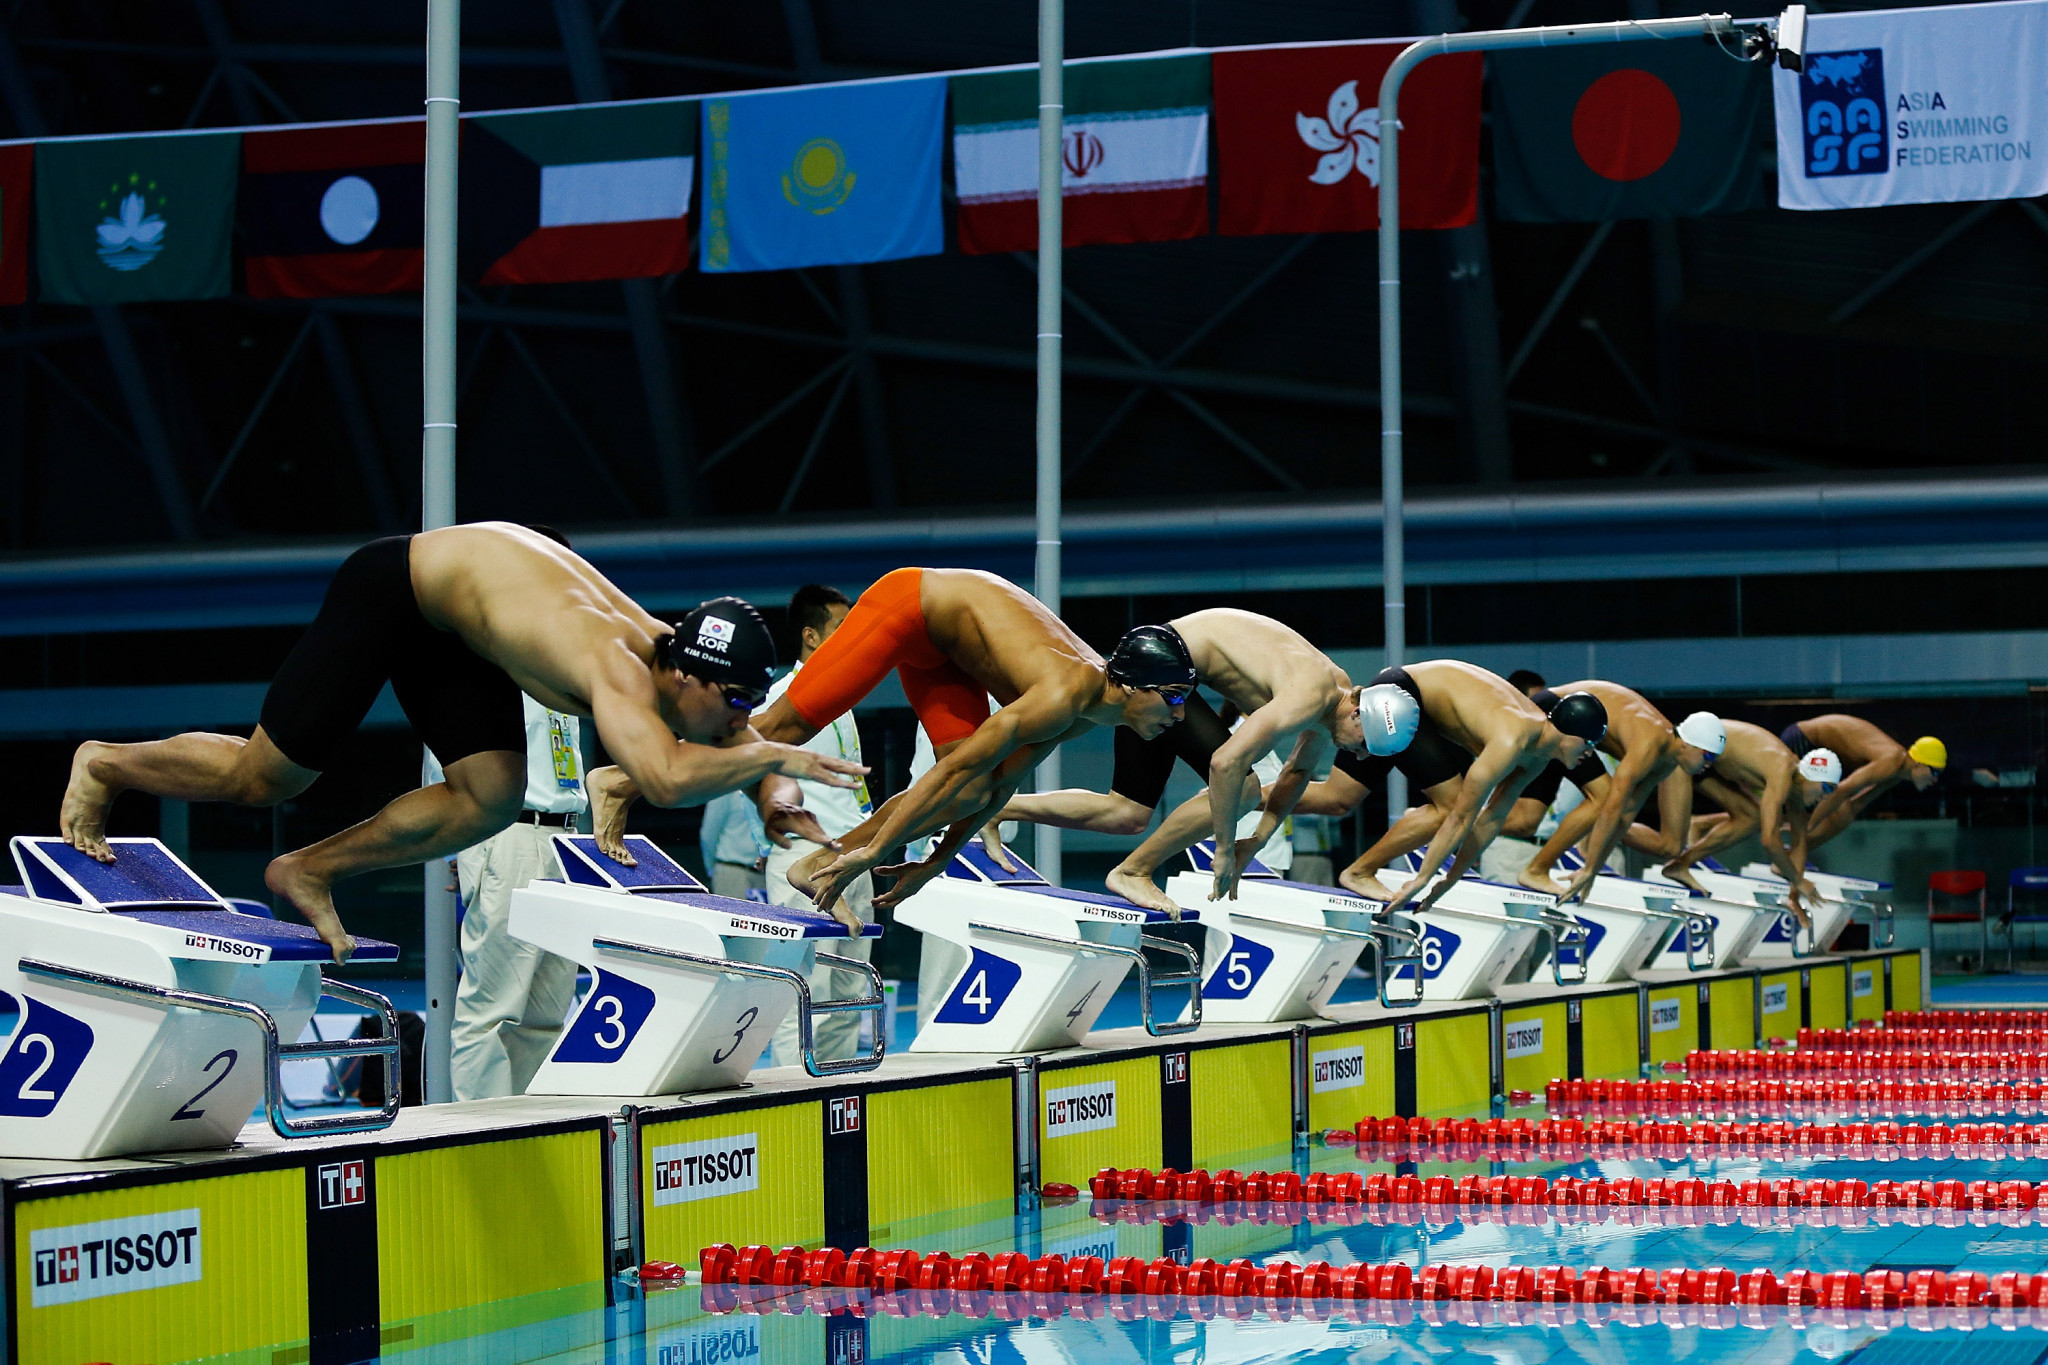 The Asian Youth Games have not been held since the 2013 edition in Nanjing ©Getty Images